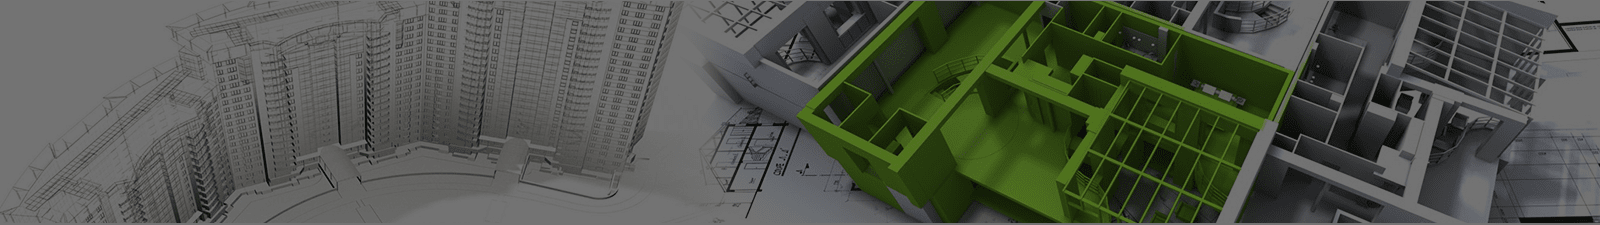 building information modeling services Salt Lake City